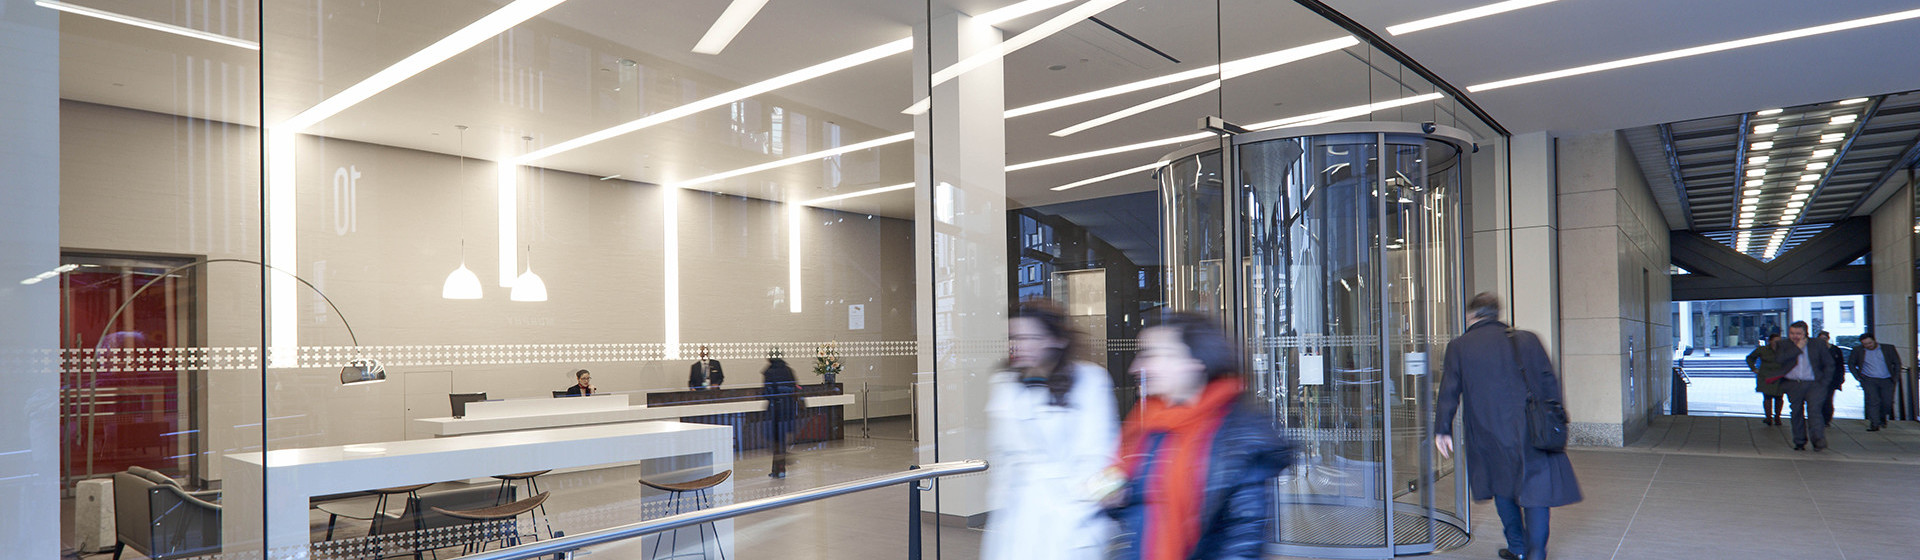 Image for 10 Fleet Place Image 4